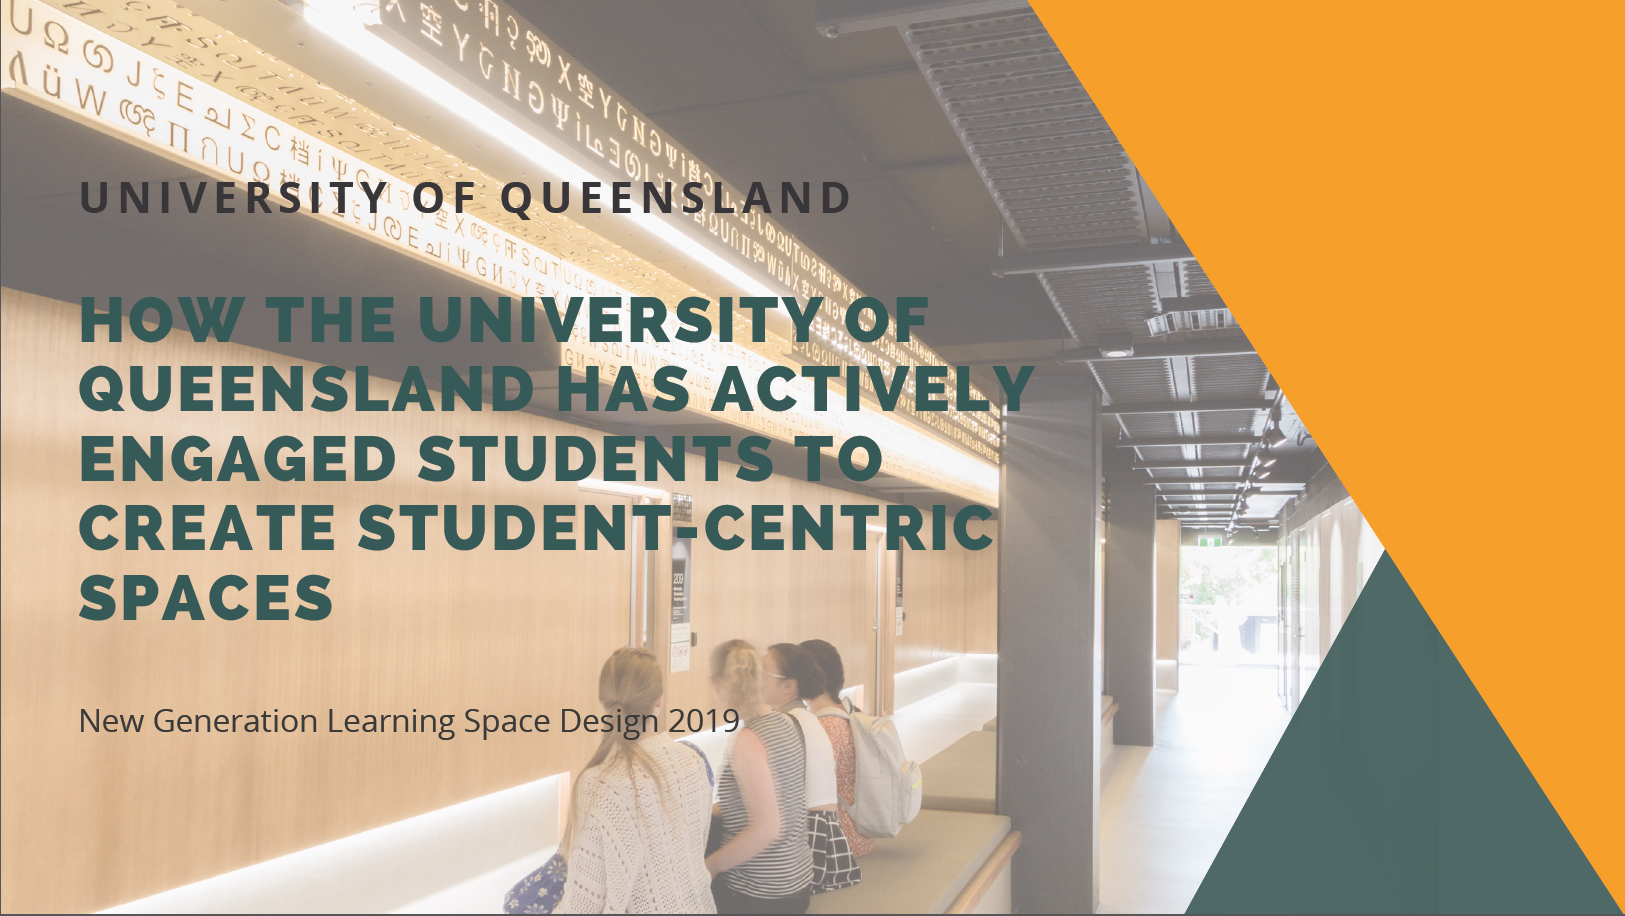 How the University of Queensland has Actively Engaged Students to Create Student-centric Spaces